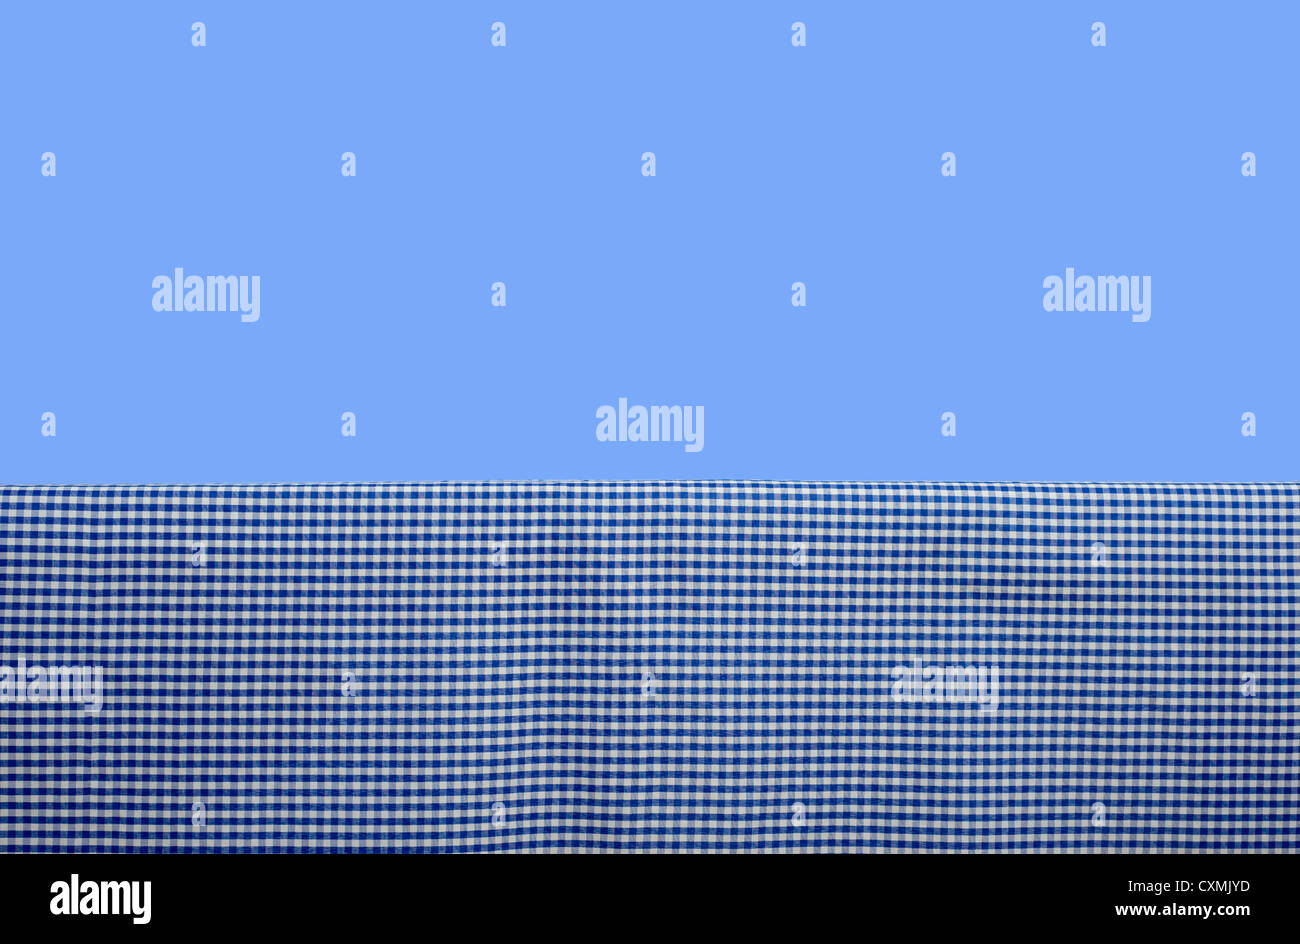 Blue tablecloth background - Blue Gingham Or Checked Tablecloth Background In Front Of A Blue Sky Picnic Table Cloth With Copy Space